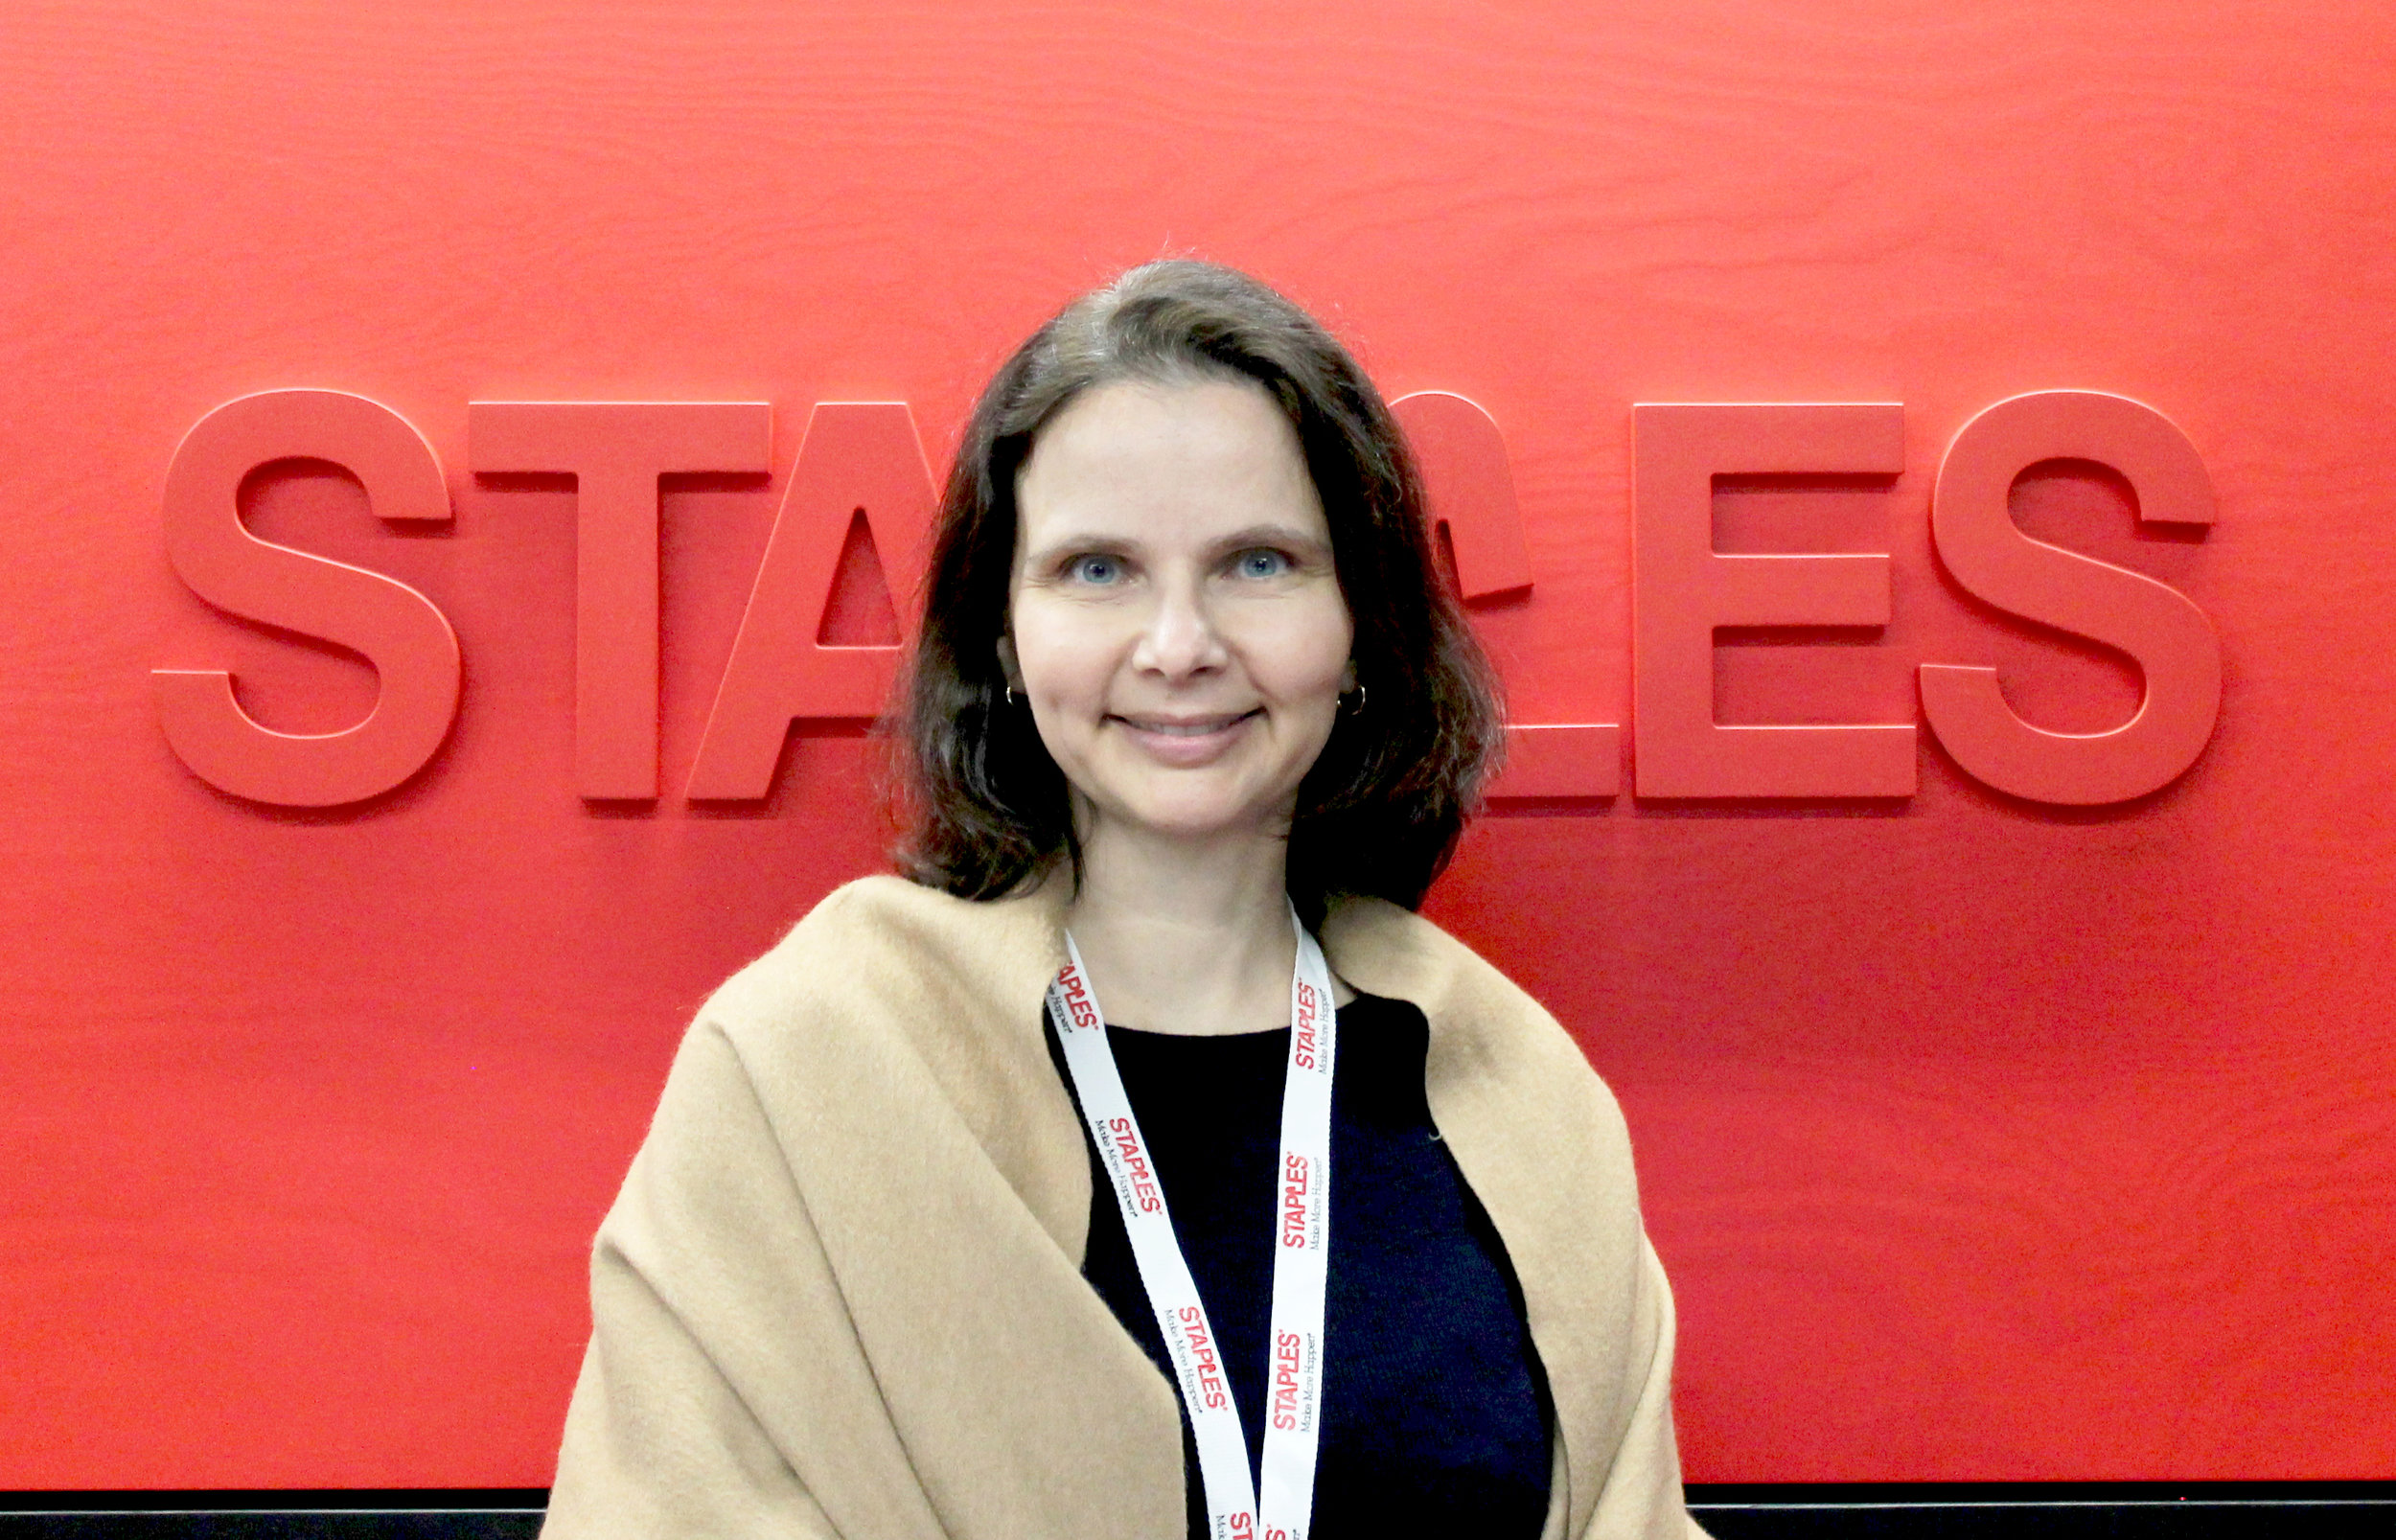 Tone Haugen-Flermoe, Communications and Marketing Manager in Staples Norway